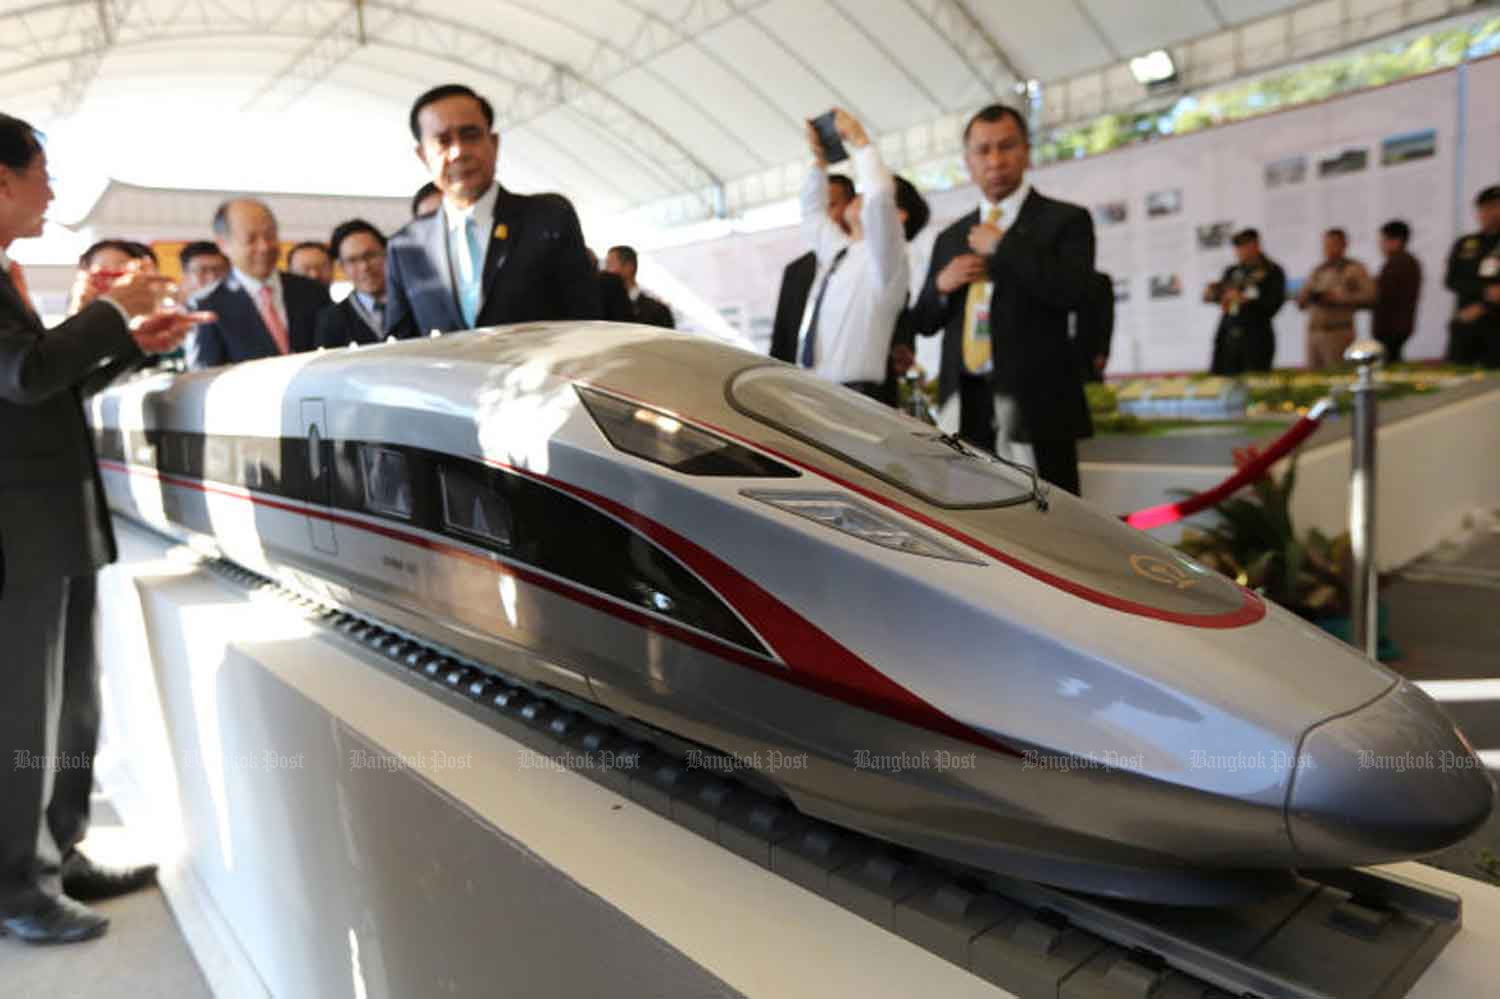 The Transport Ministry will hold contract talks with China for the joint high-speed railway project during the Asean Summit in November. (Bangkok Post photo)